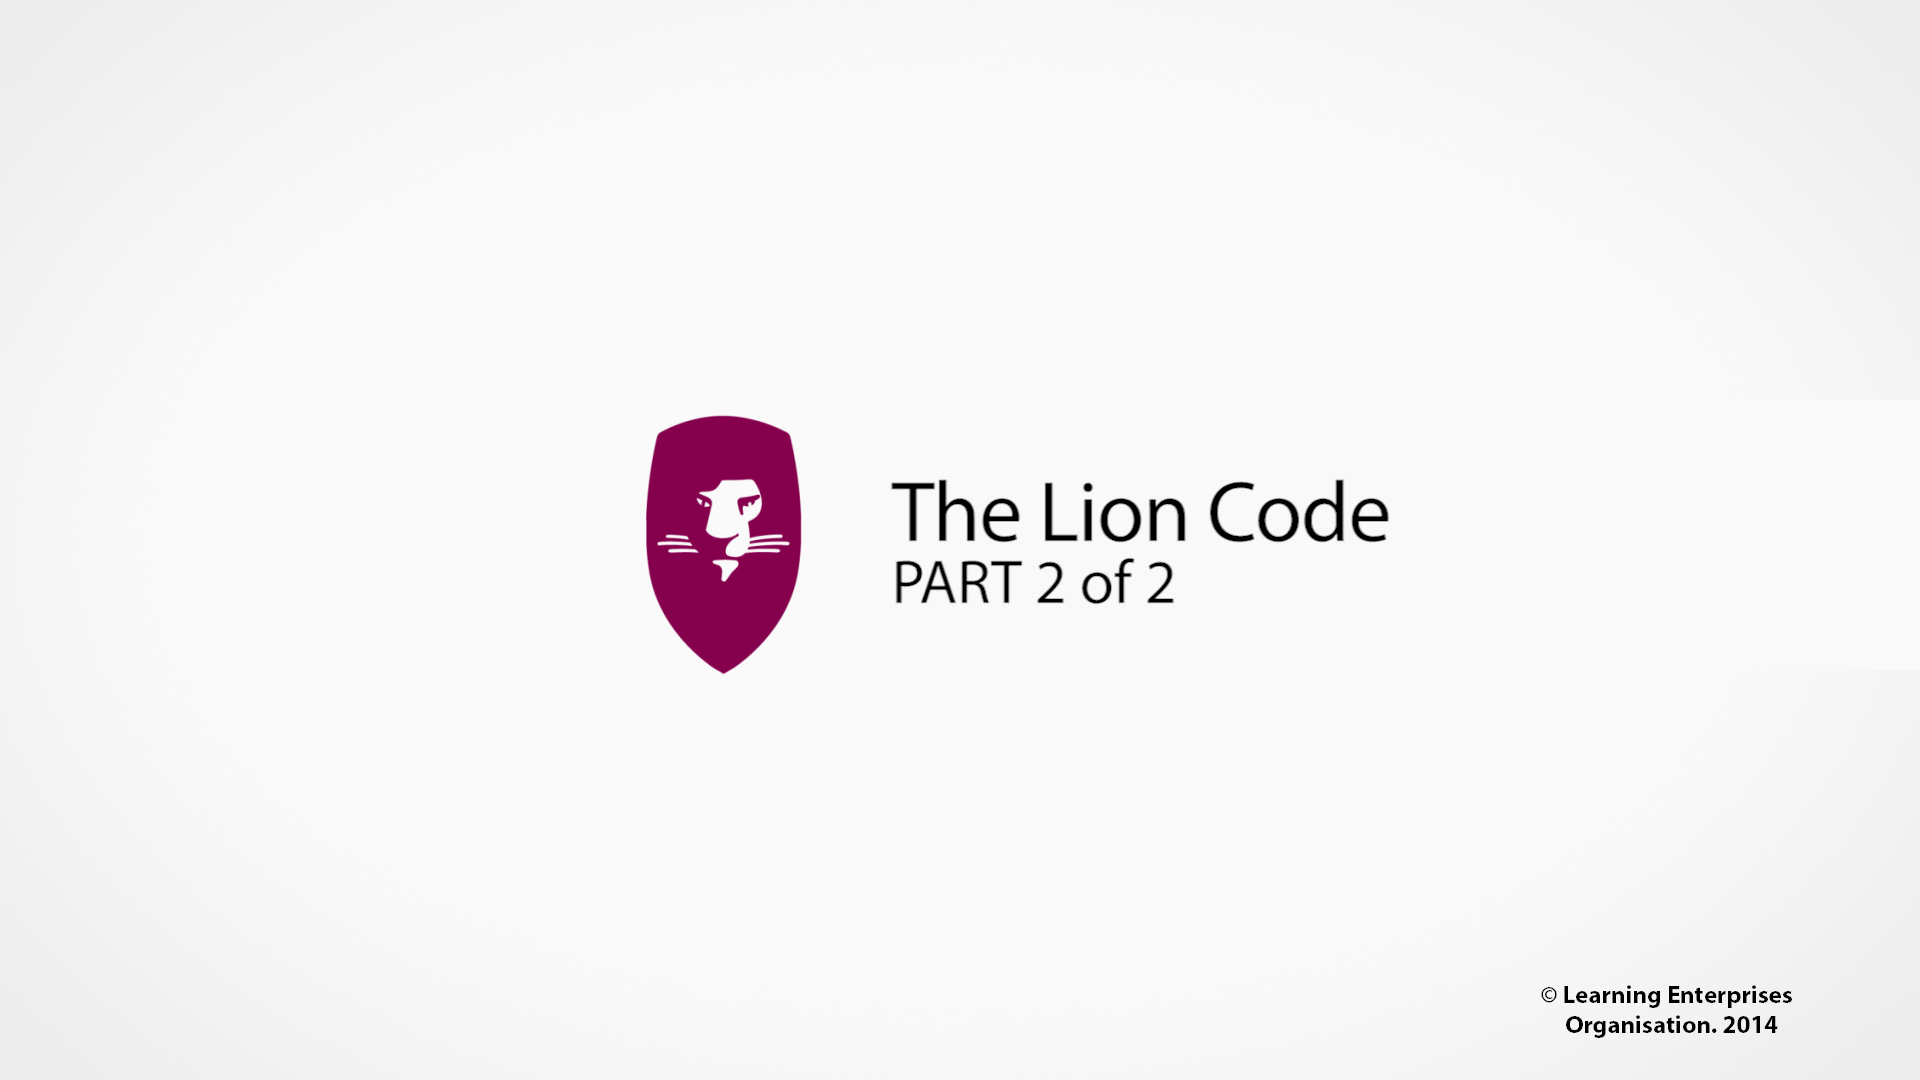 Dan Andersson - The Lion Code (Part 2 of 2) - Toronto 2014